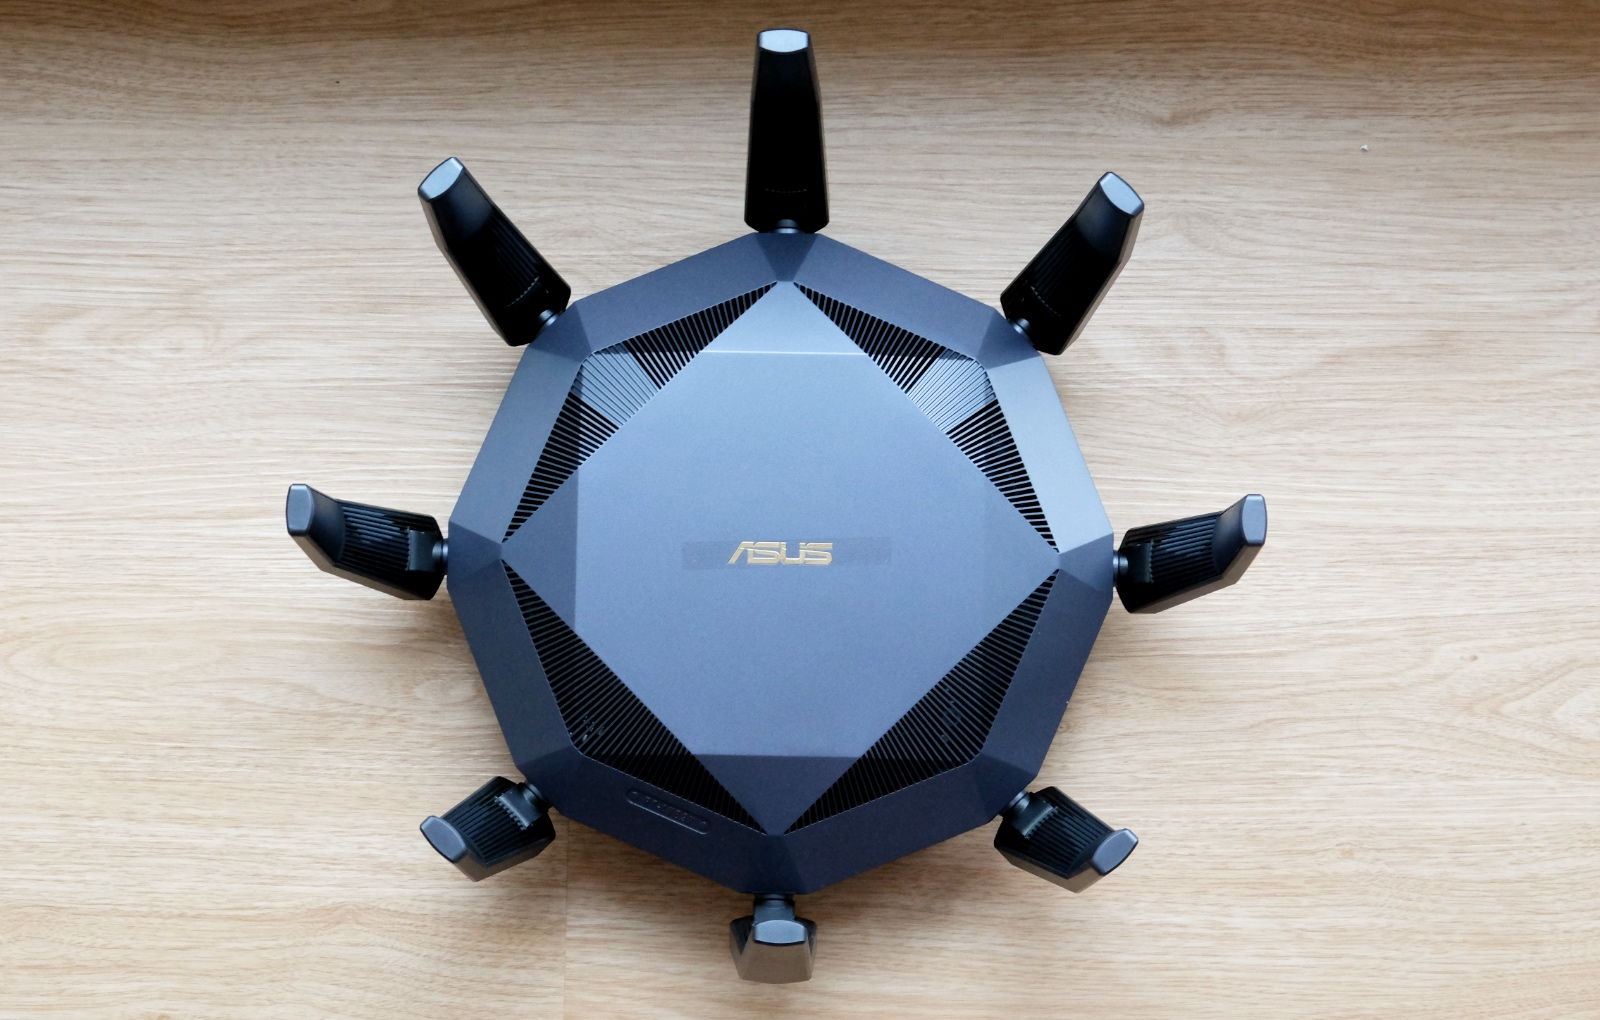 With its large antennas, the ASUS RT-AX89X is a super conspicuous router.